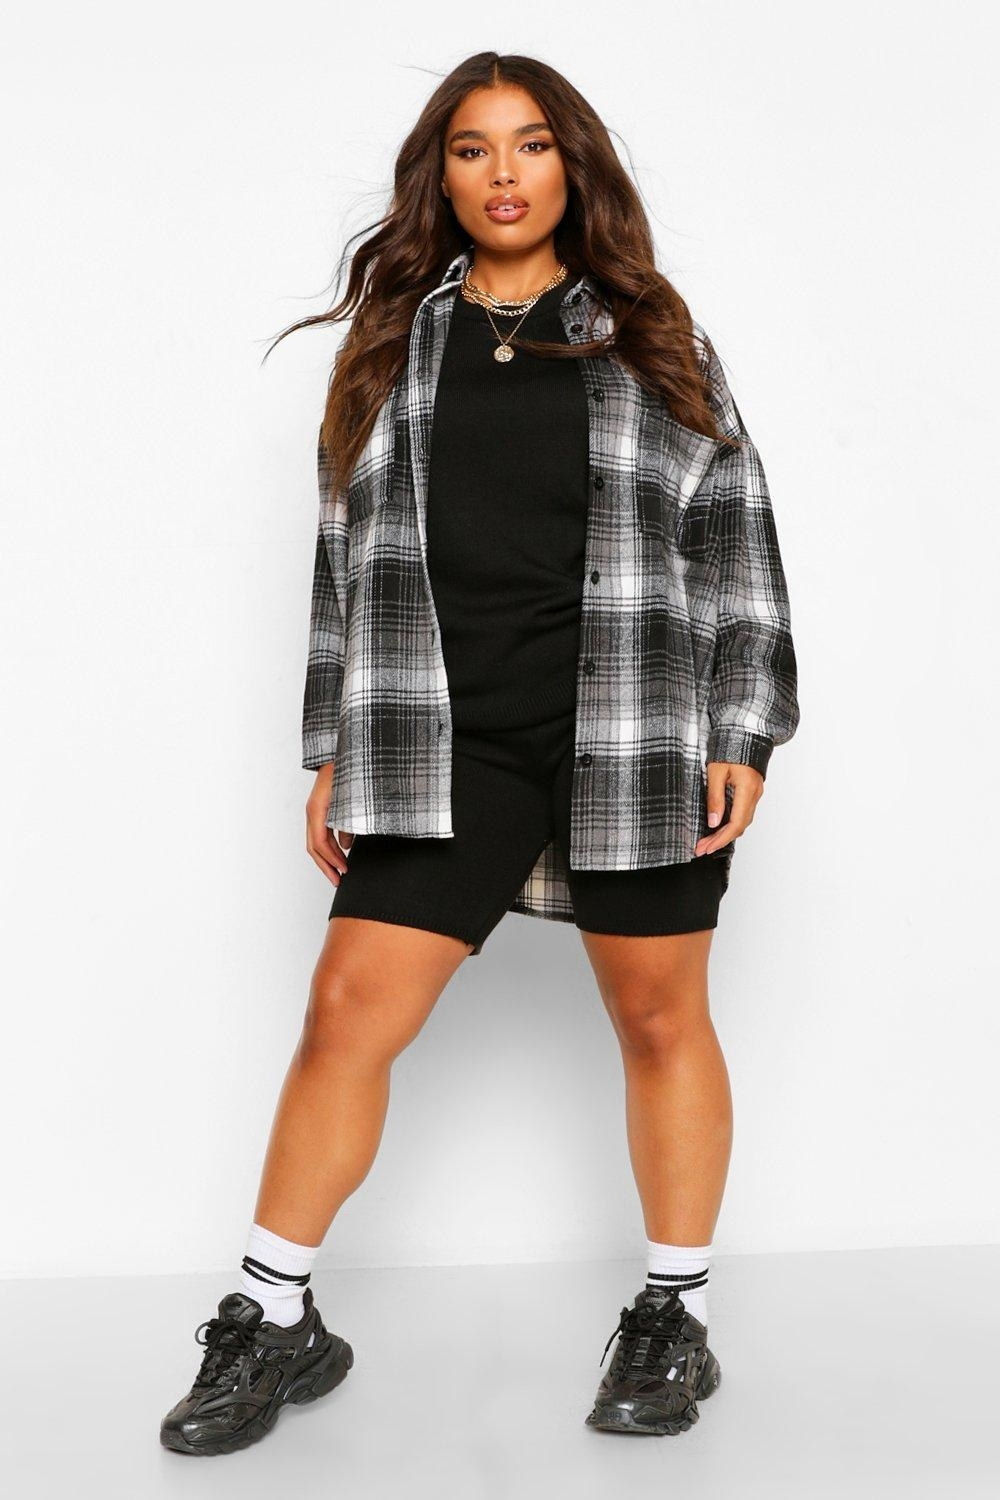 a model in a grey and white plaid flannel